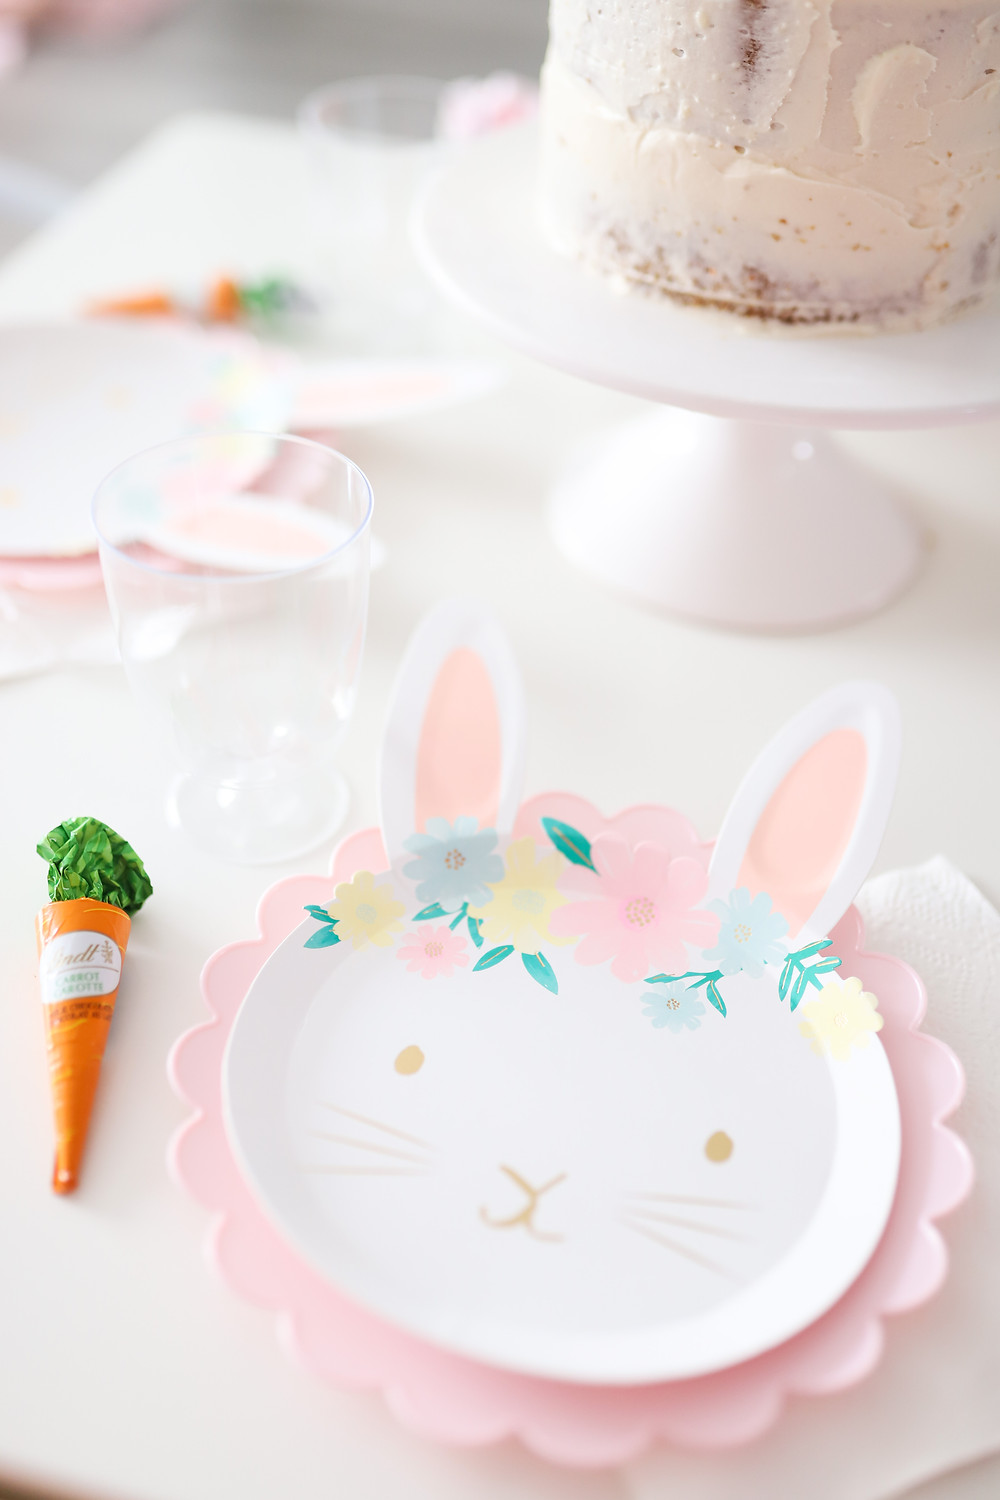 Pretty paper bunny rabbit plates on a white table set for a bunny Easter party.